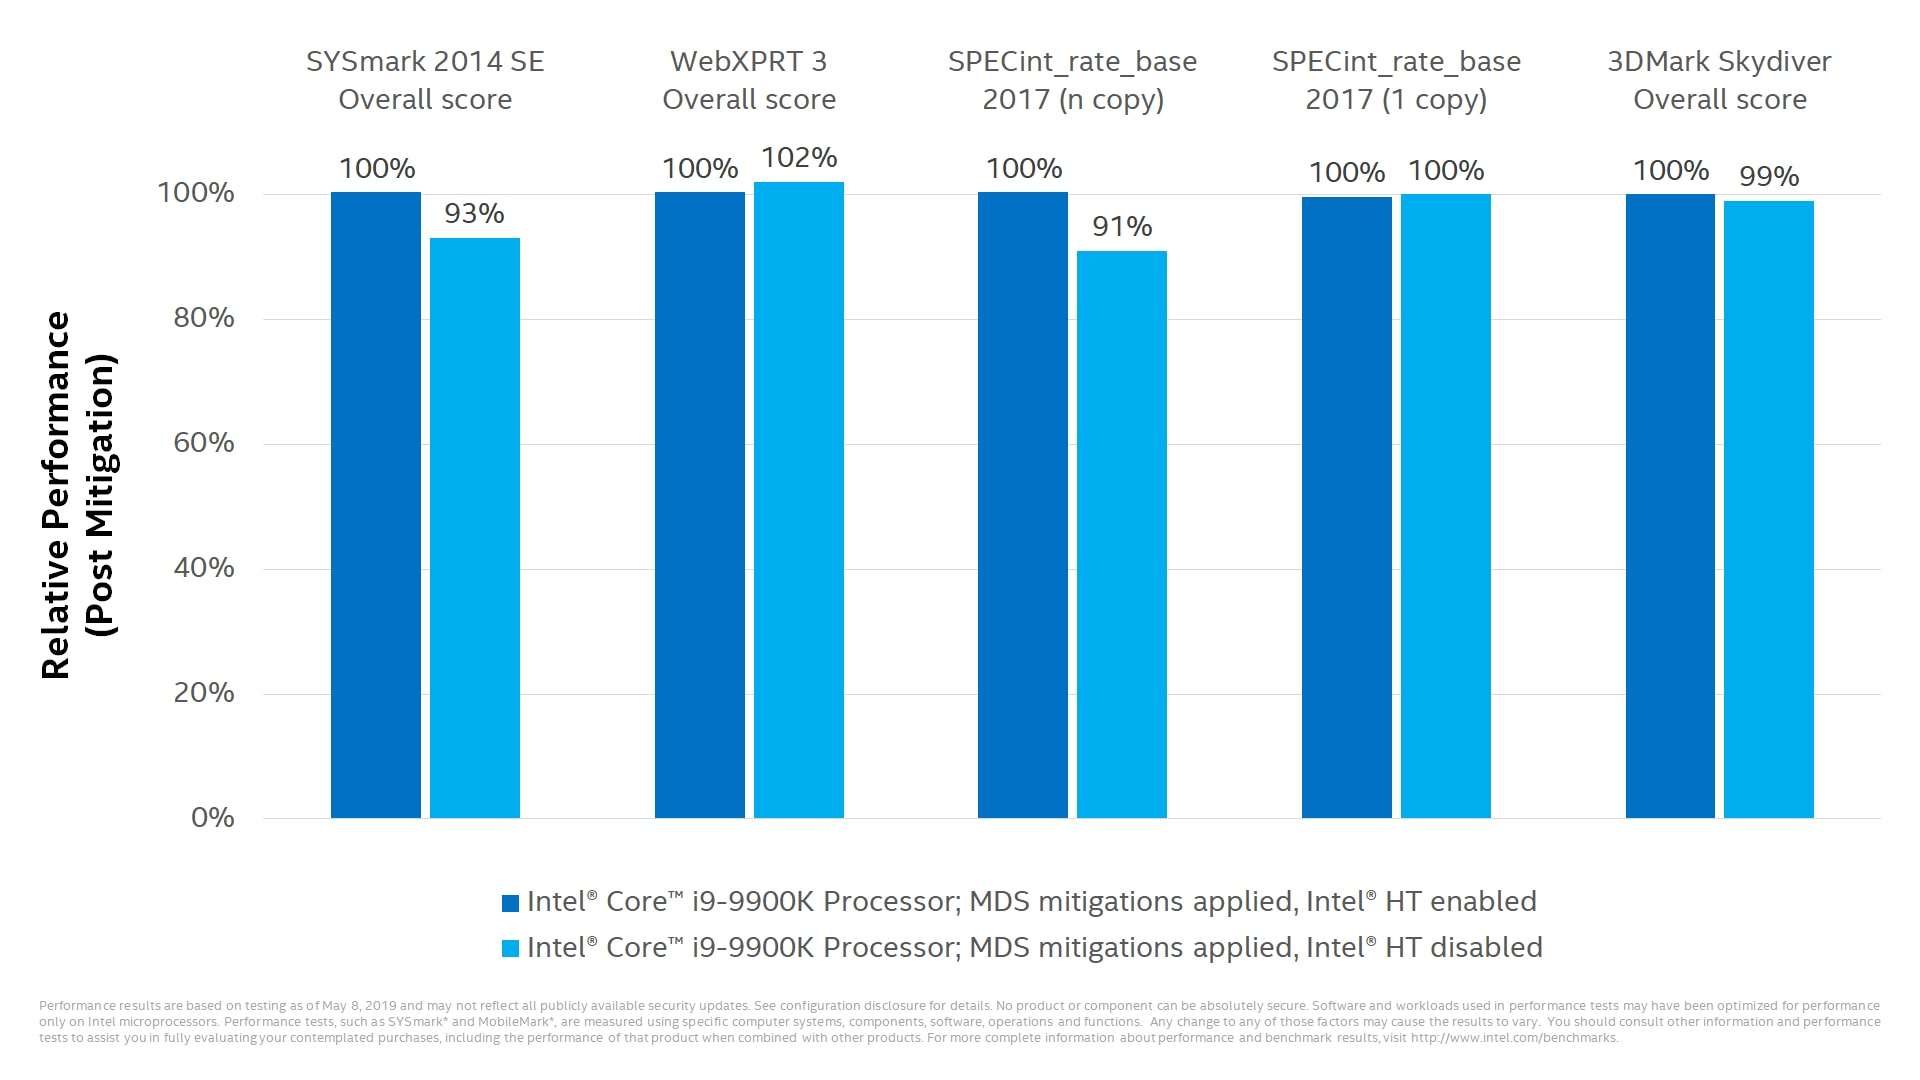 Some performance impact for the majority of PC clients with Intel® Hyper-Threading disabled